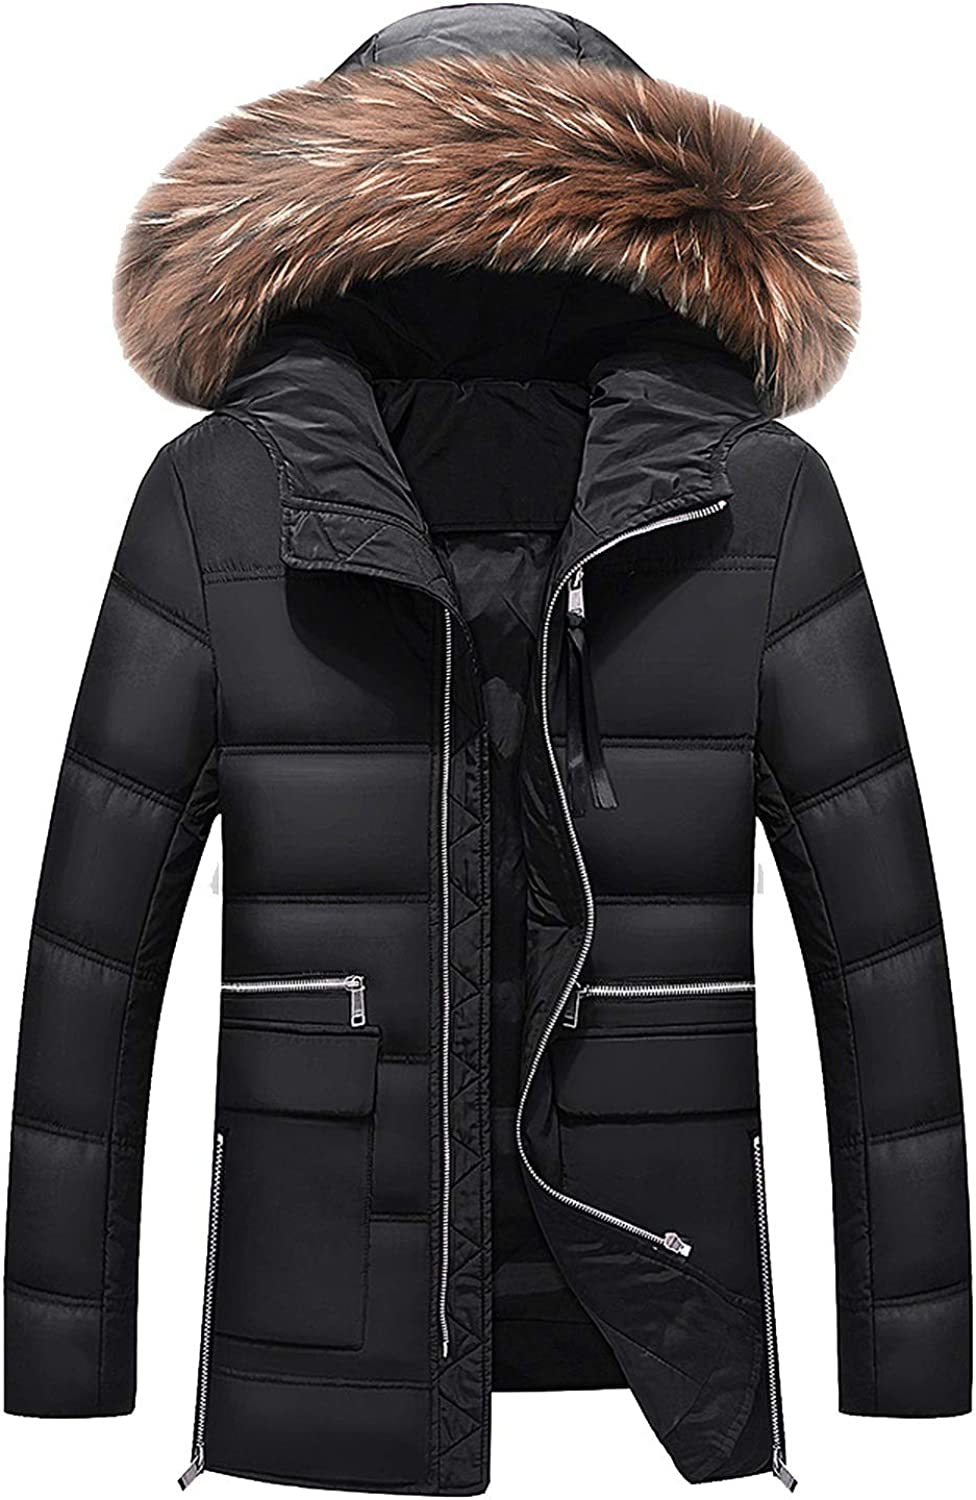 CrazyShop Winter Jacket for Fur Collar Long Jacket with Size M3XL